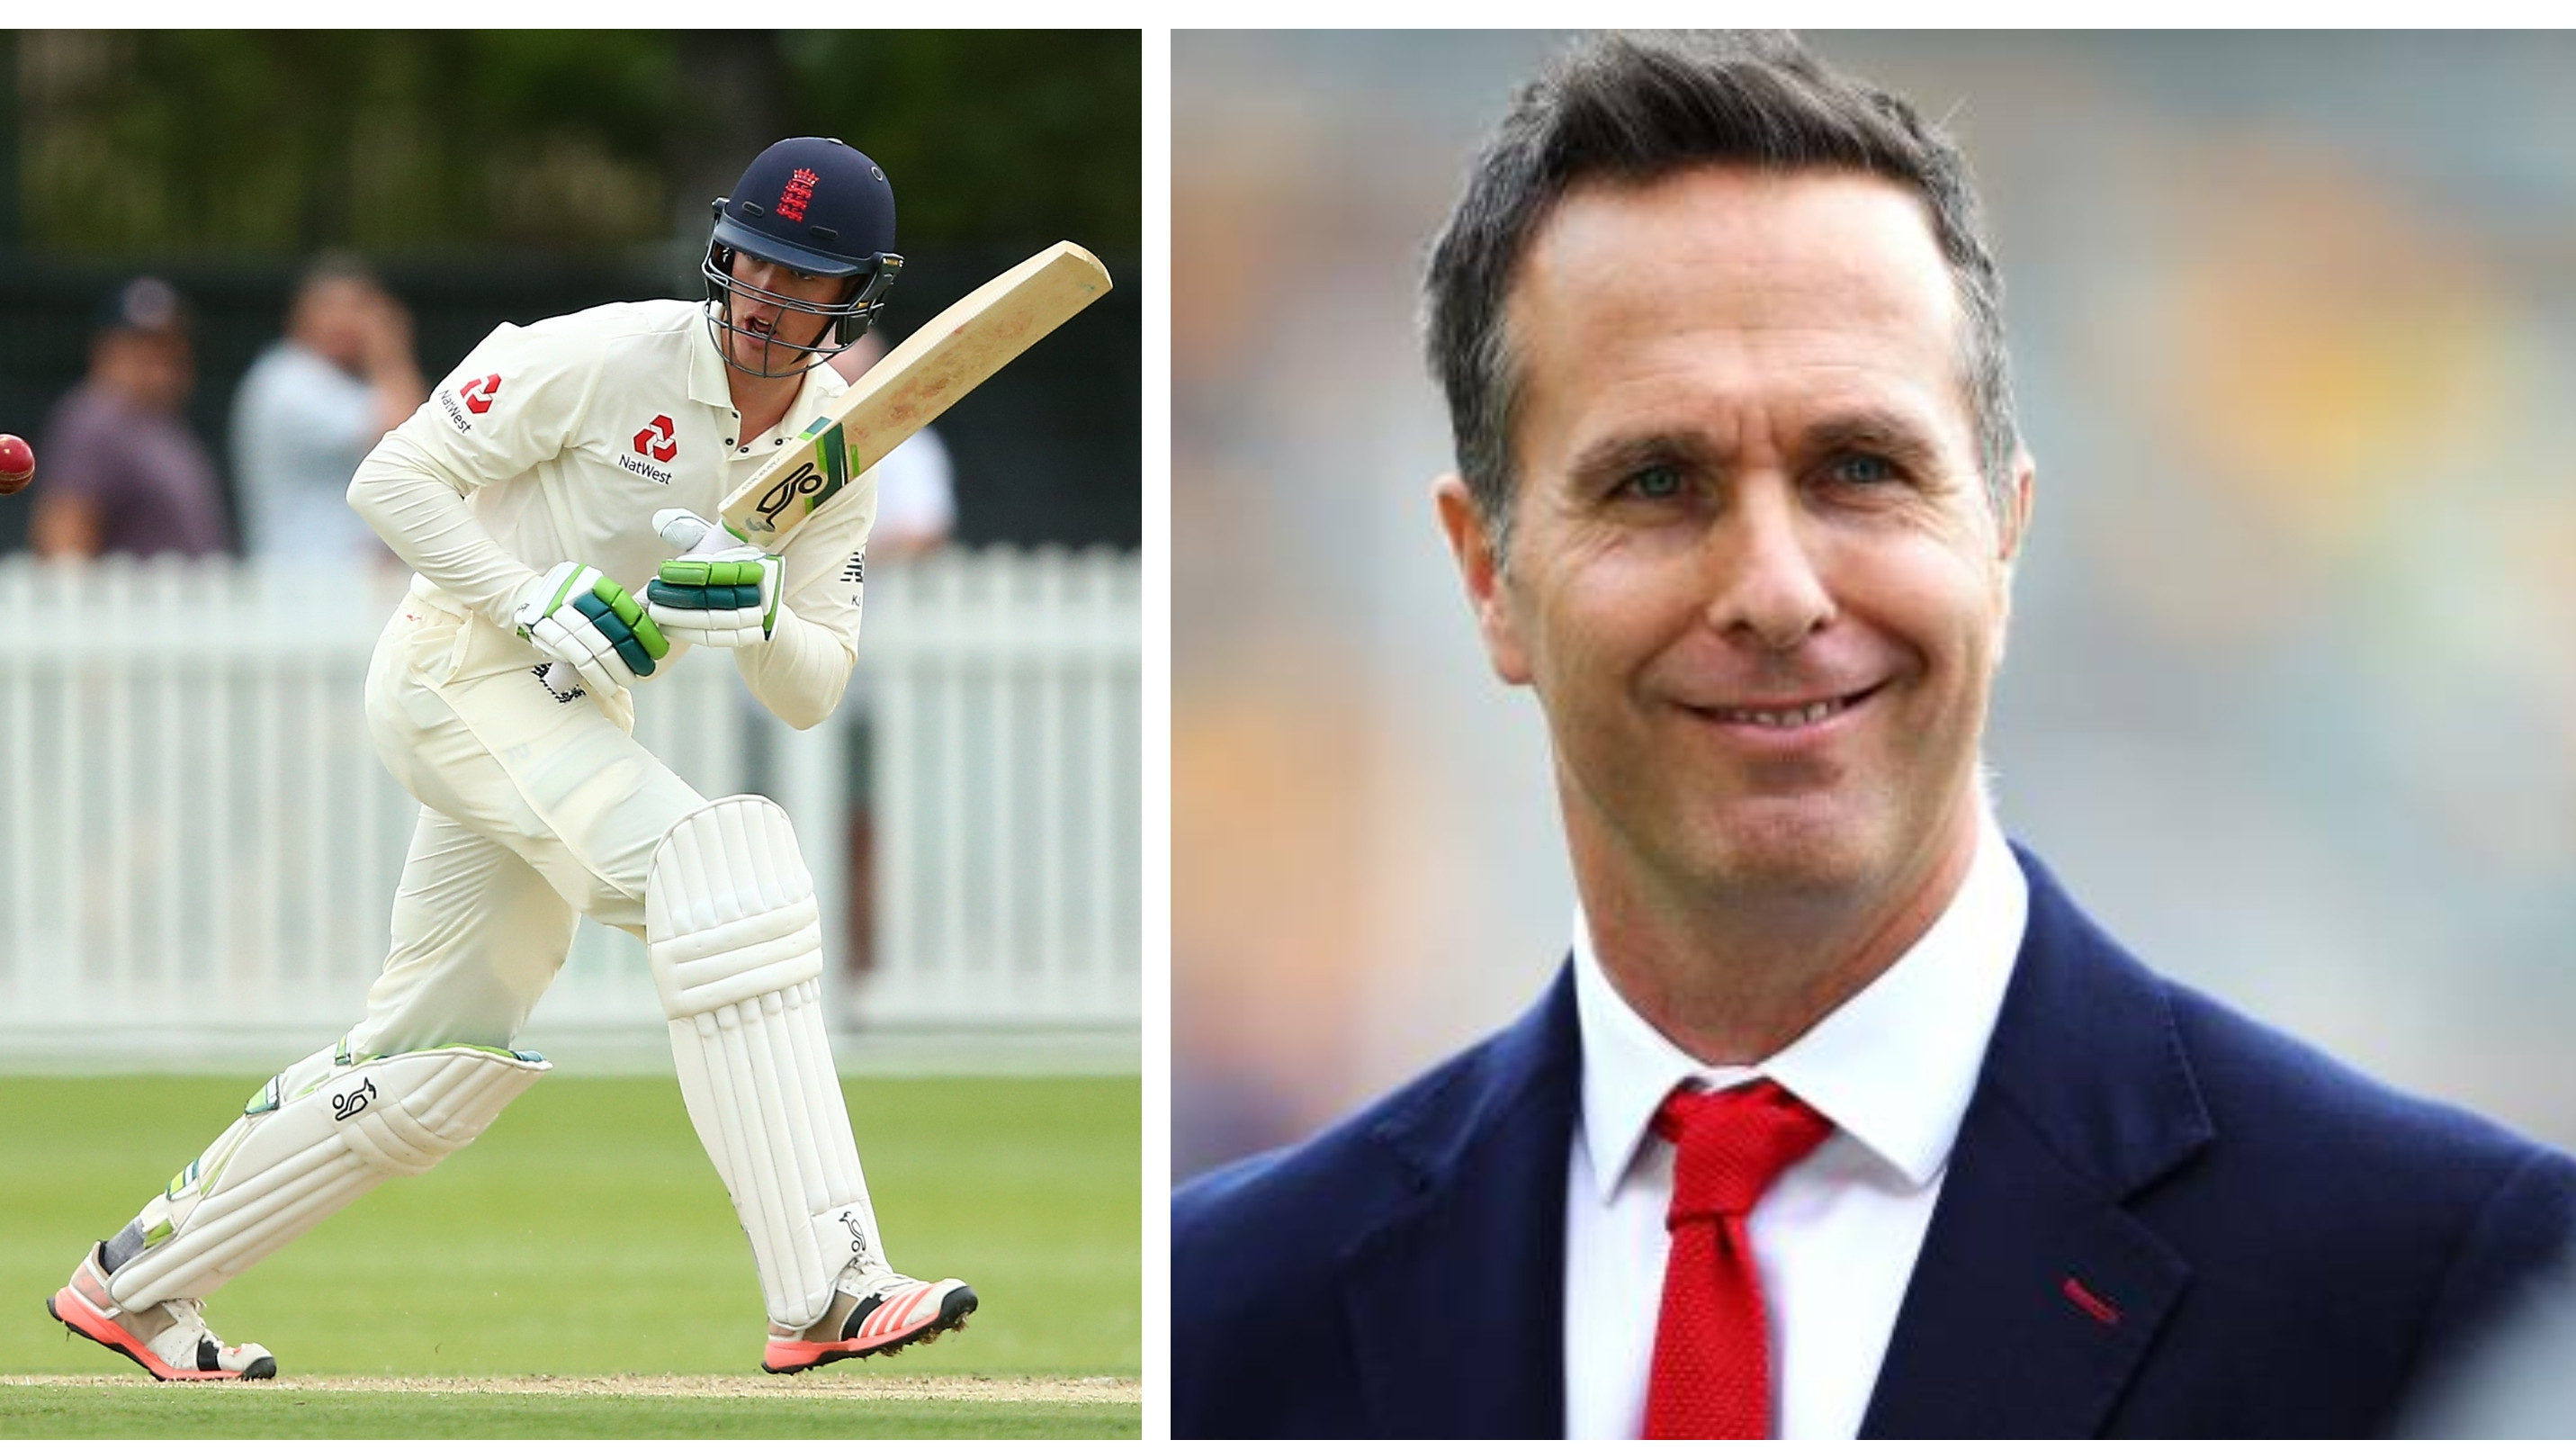 ENG vs IND 2018: You have to fear for Keaton Jennings' career, thinks Michael Vaughan